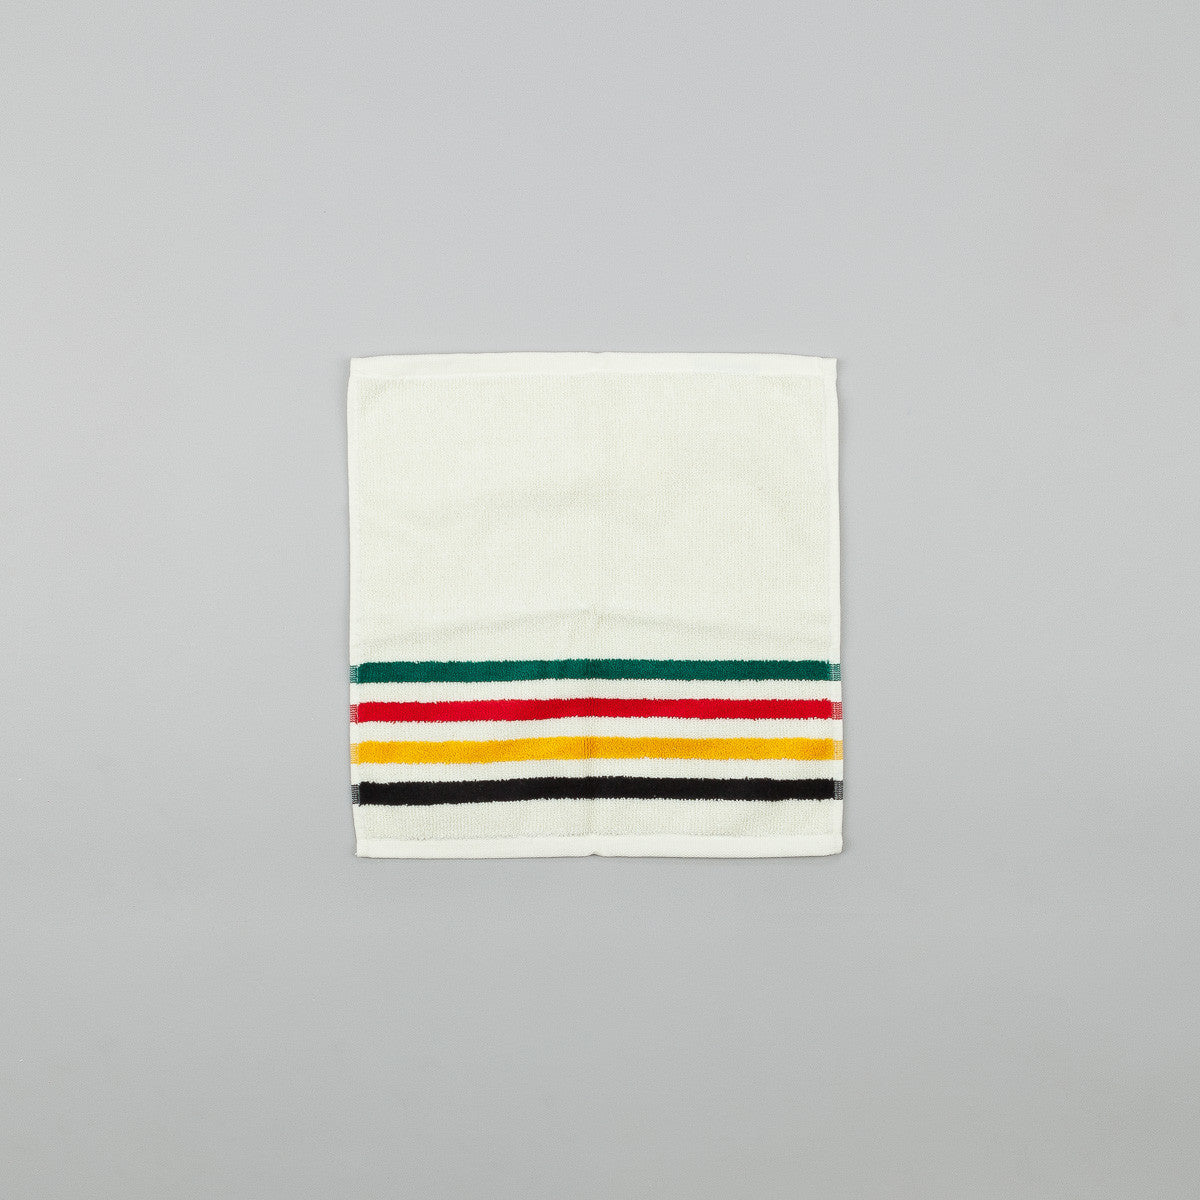 Pendleton National Park Wash Cloth